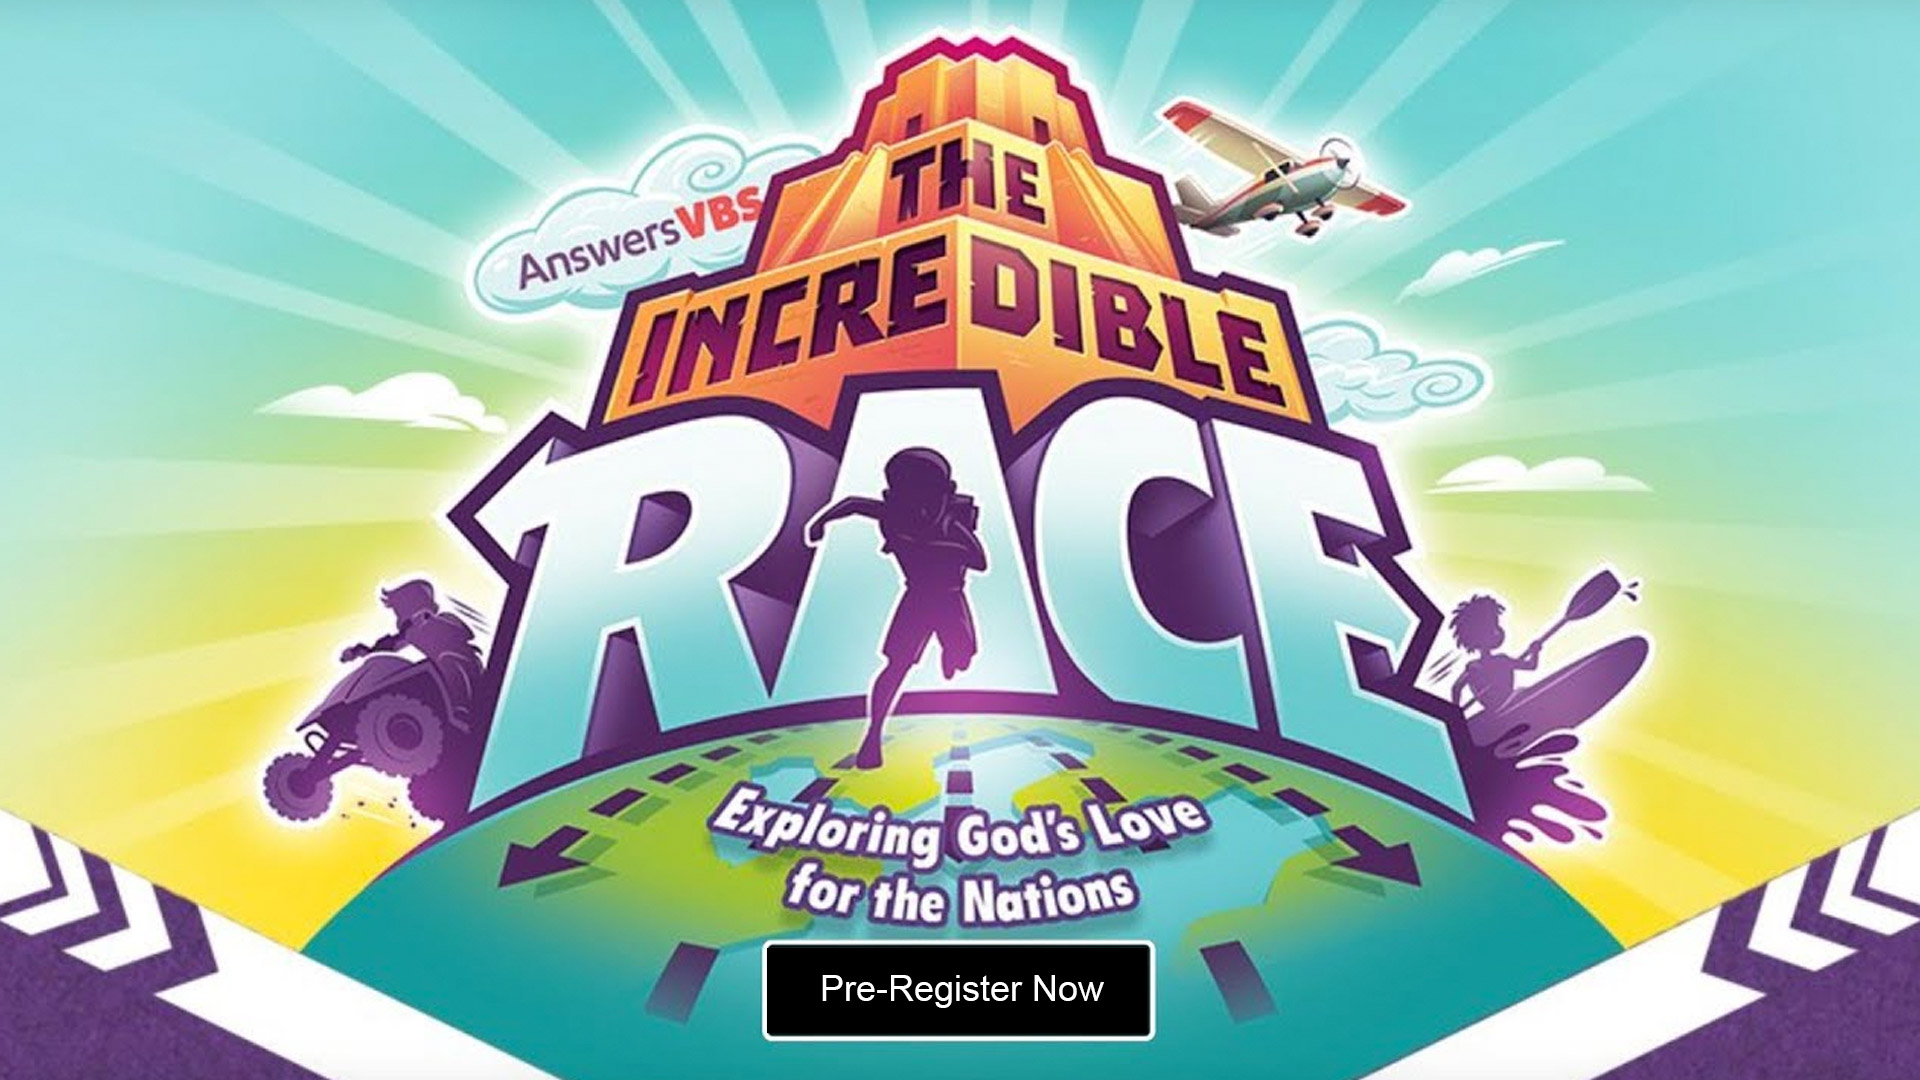 incredible-race-pre-register-slide.jpg